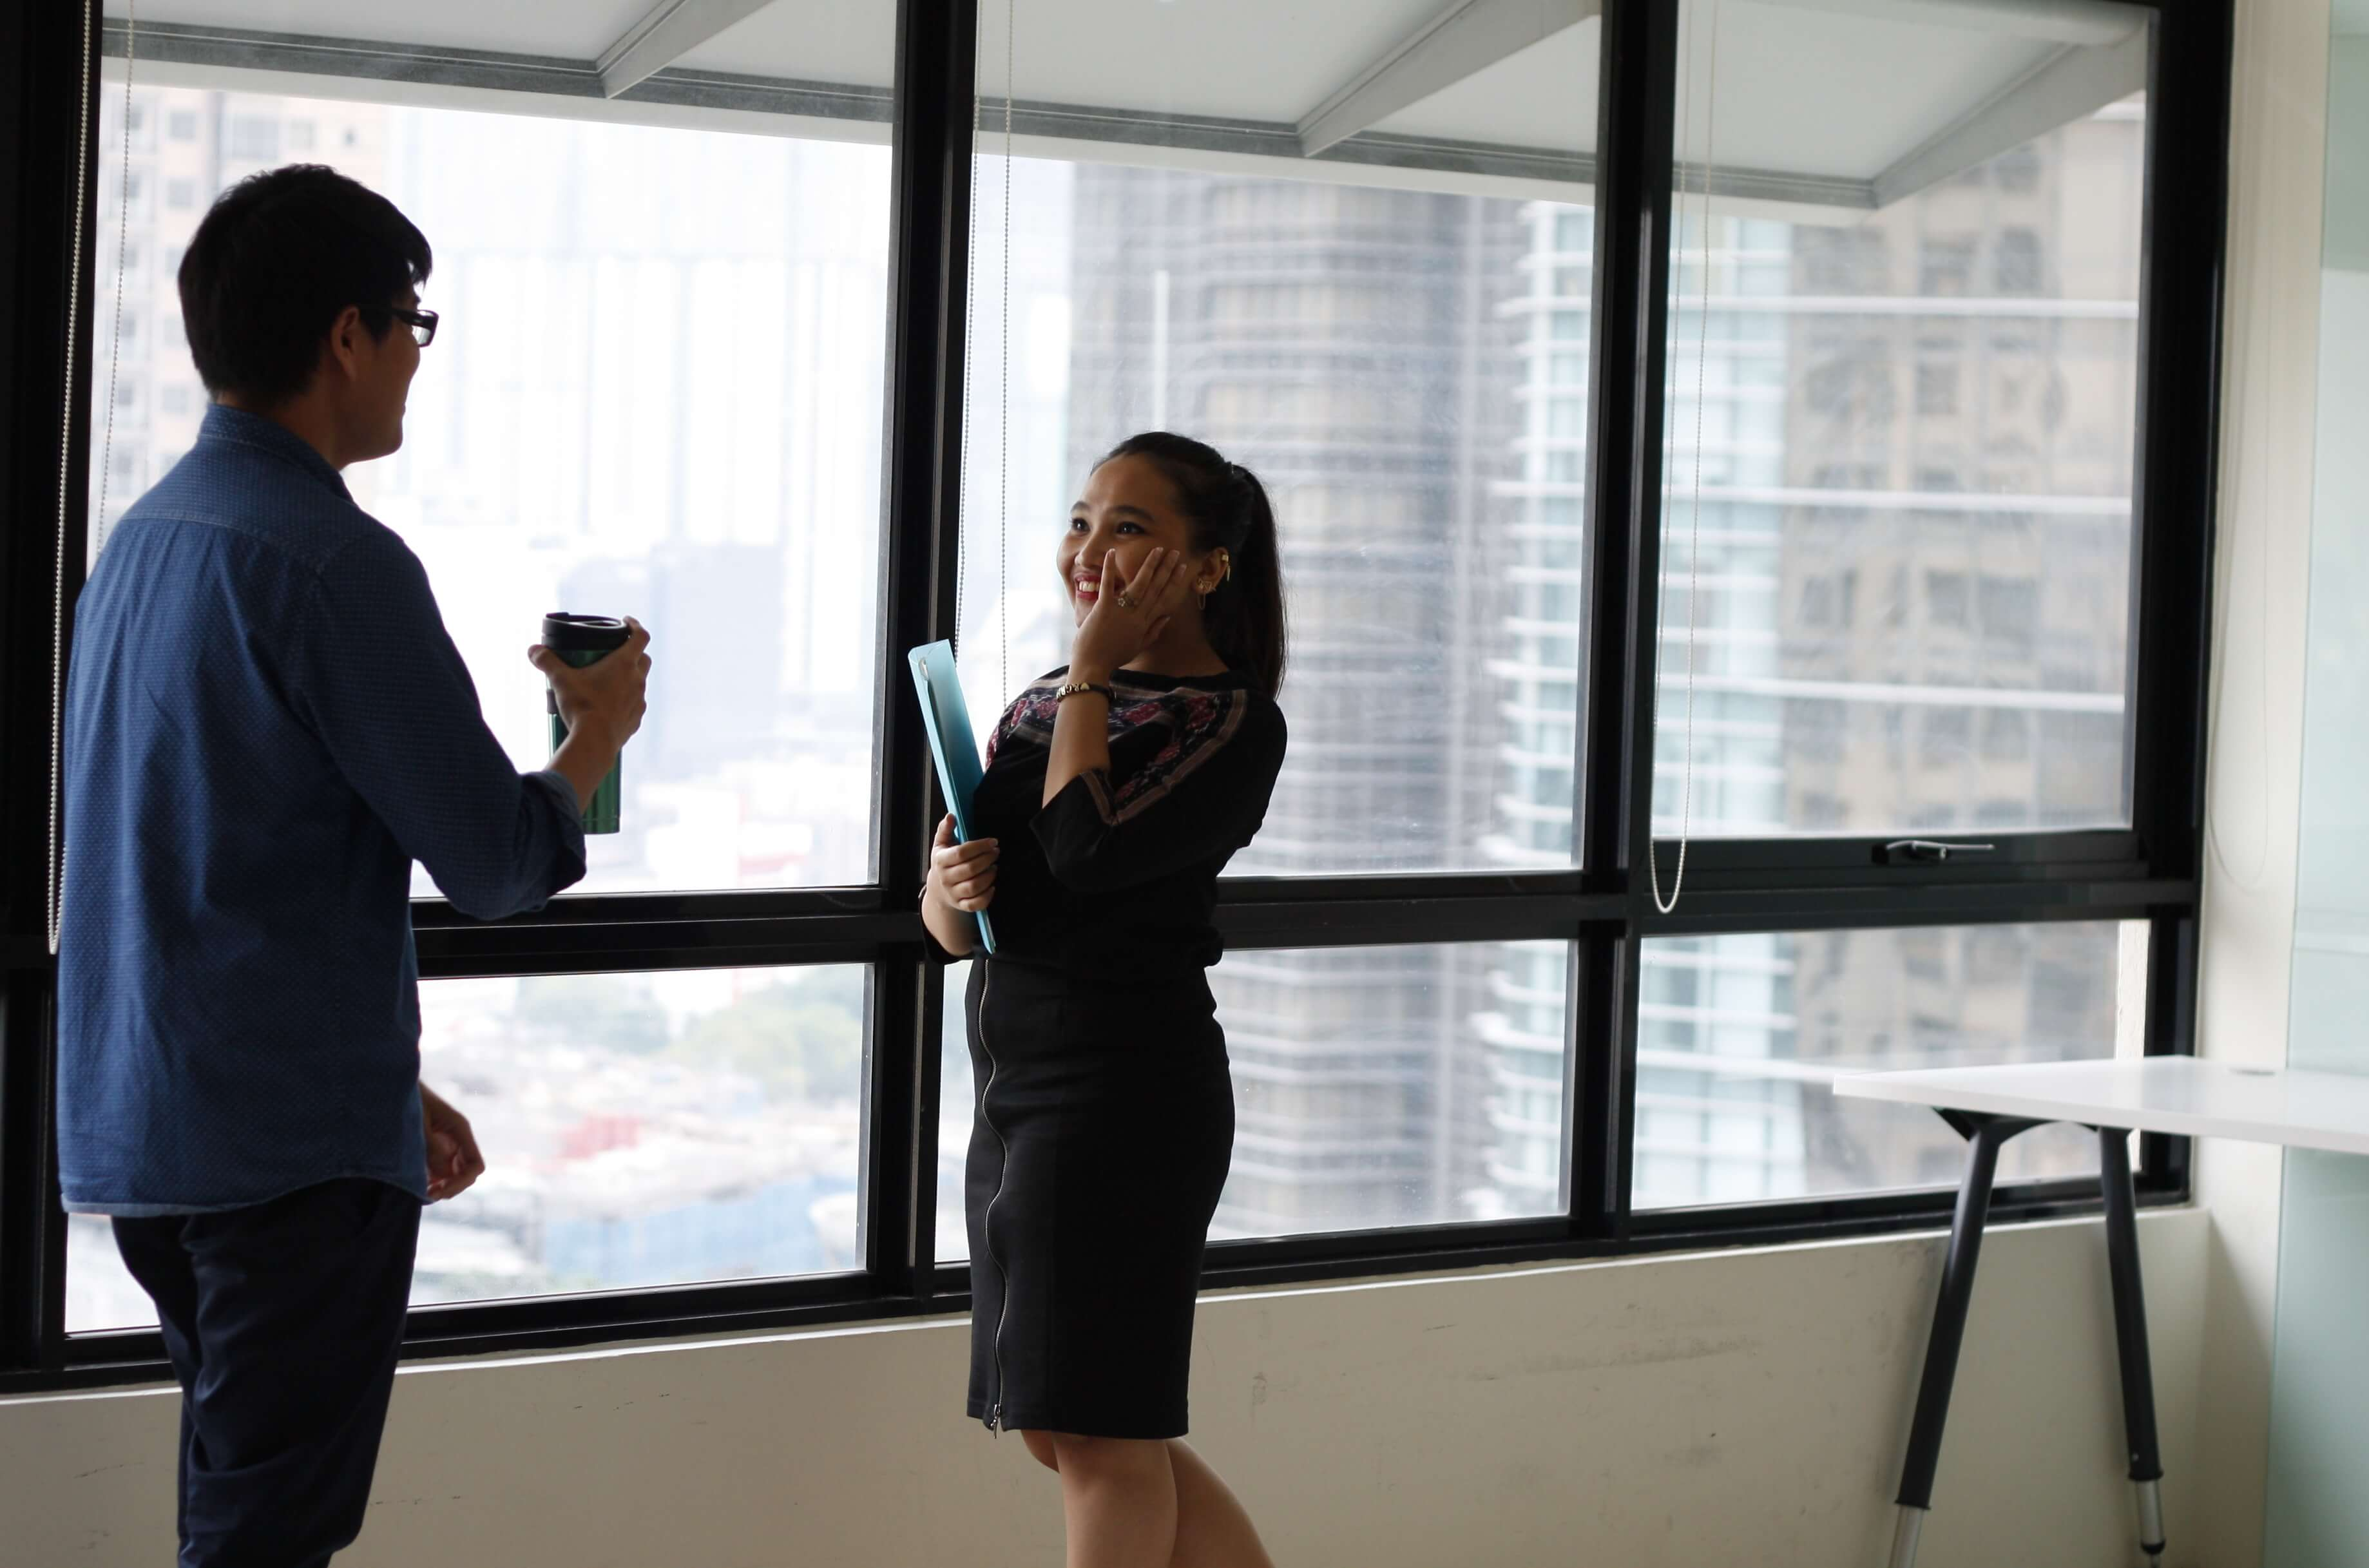 leadership archives classy career girl how to use your strengths when choosing your career